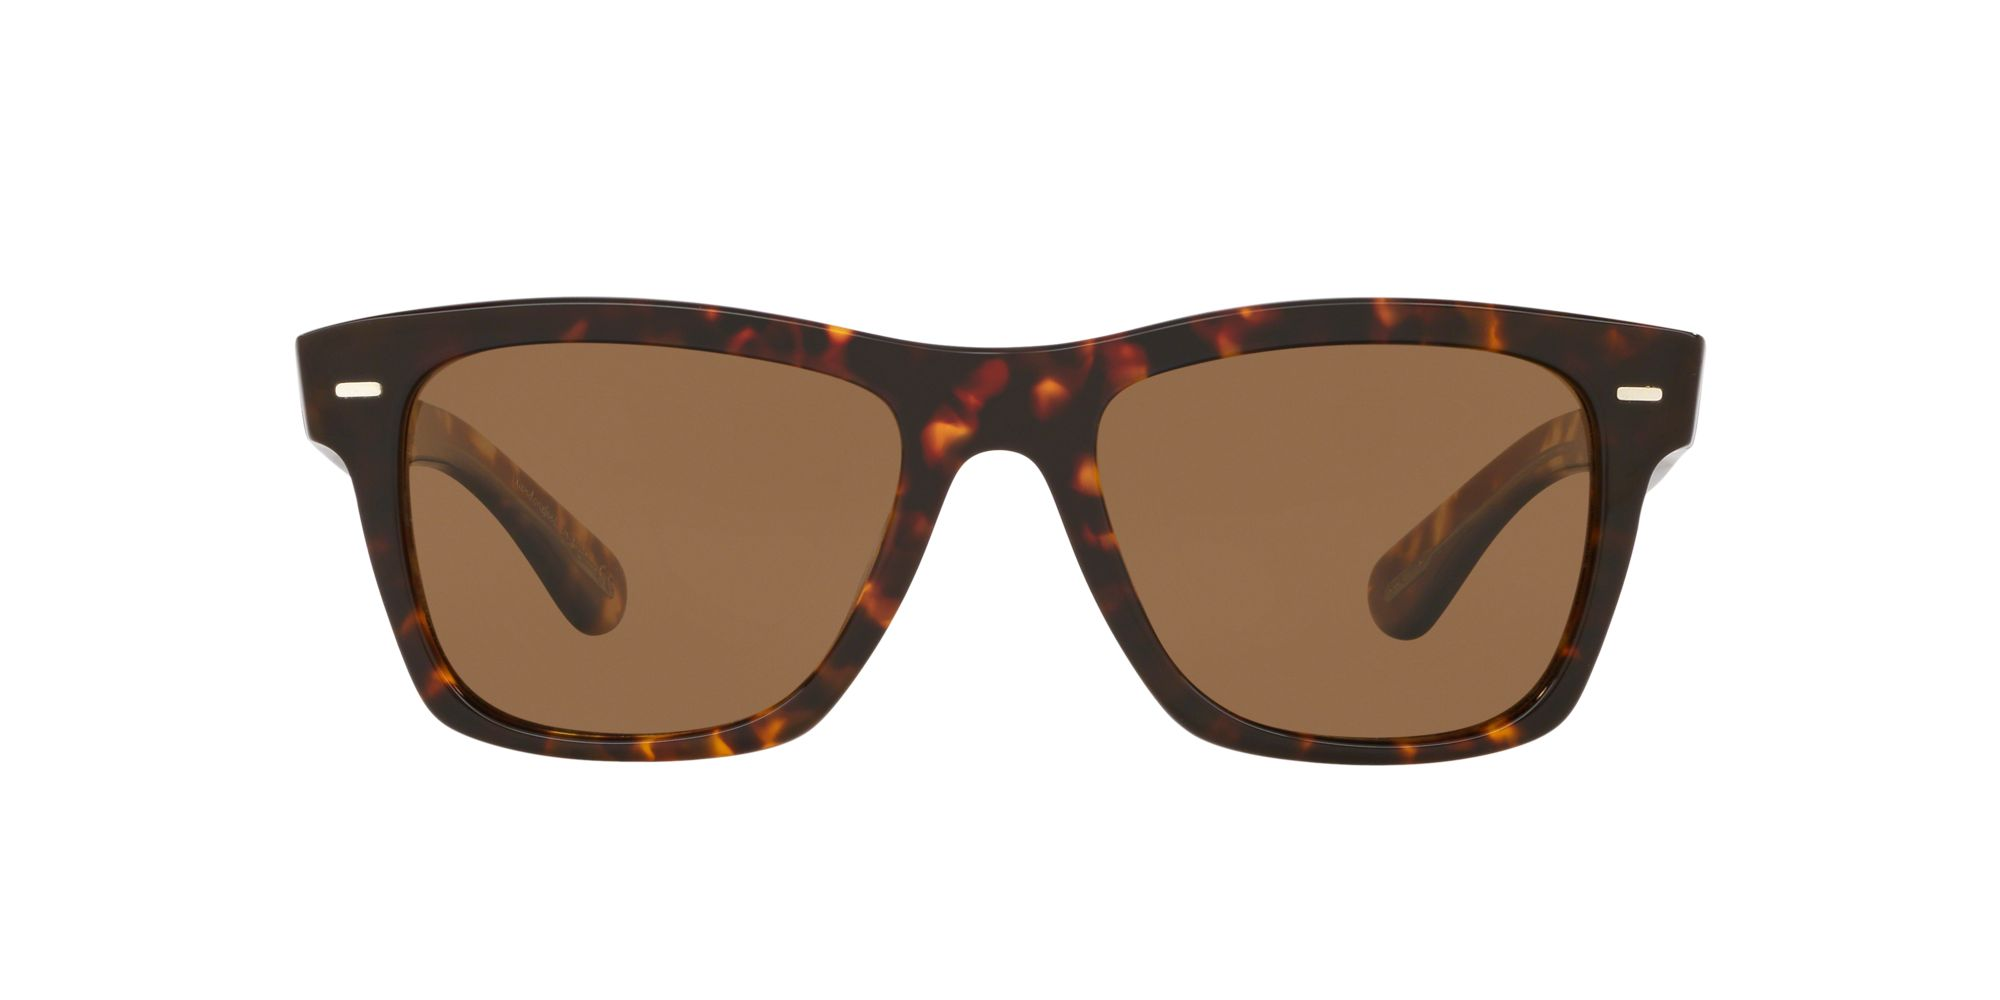 Oliver Peoples oliver sun dm2 polar